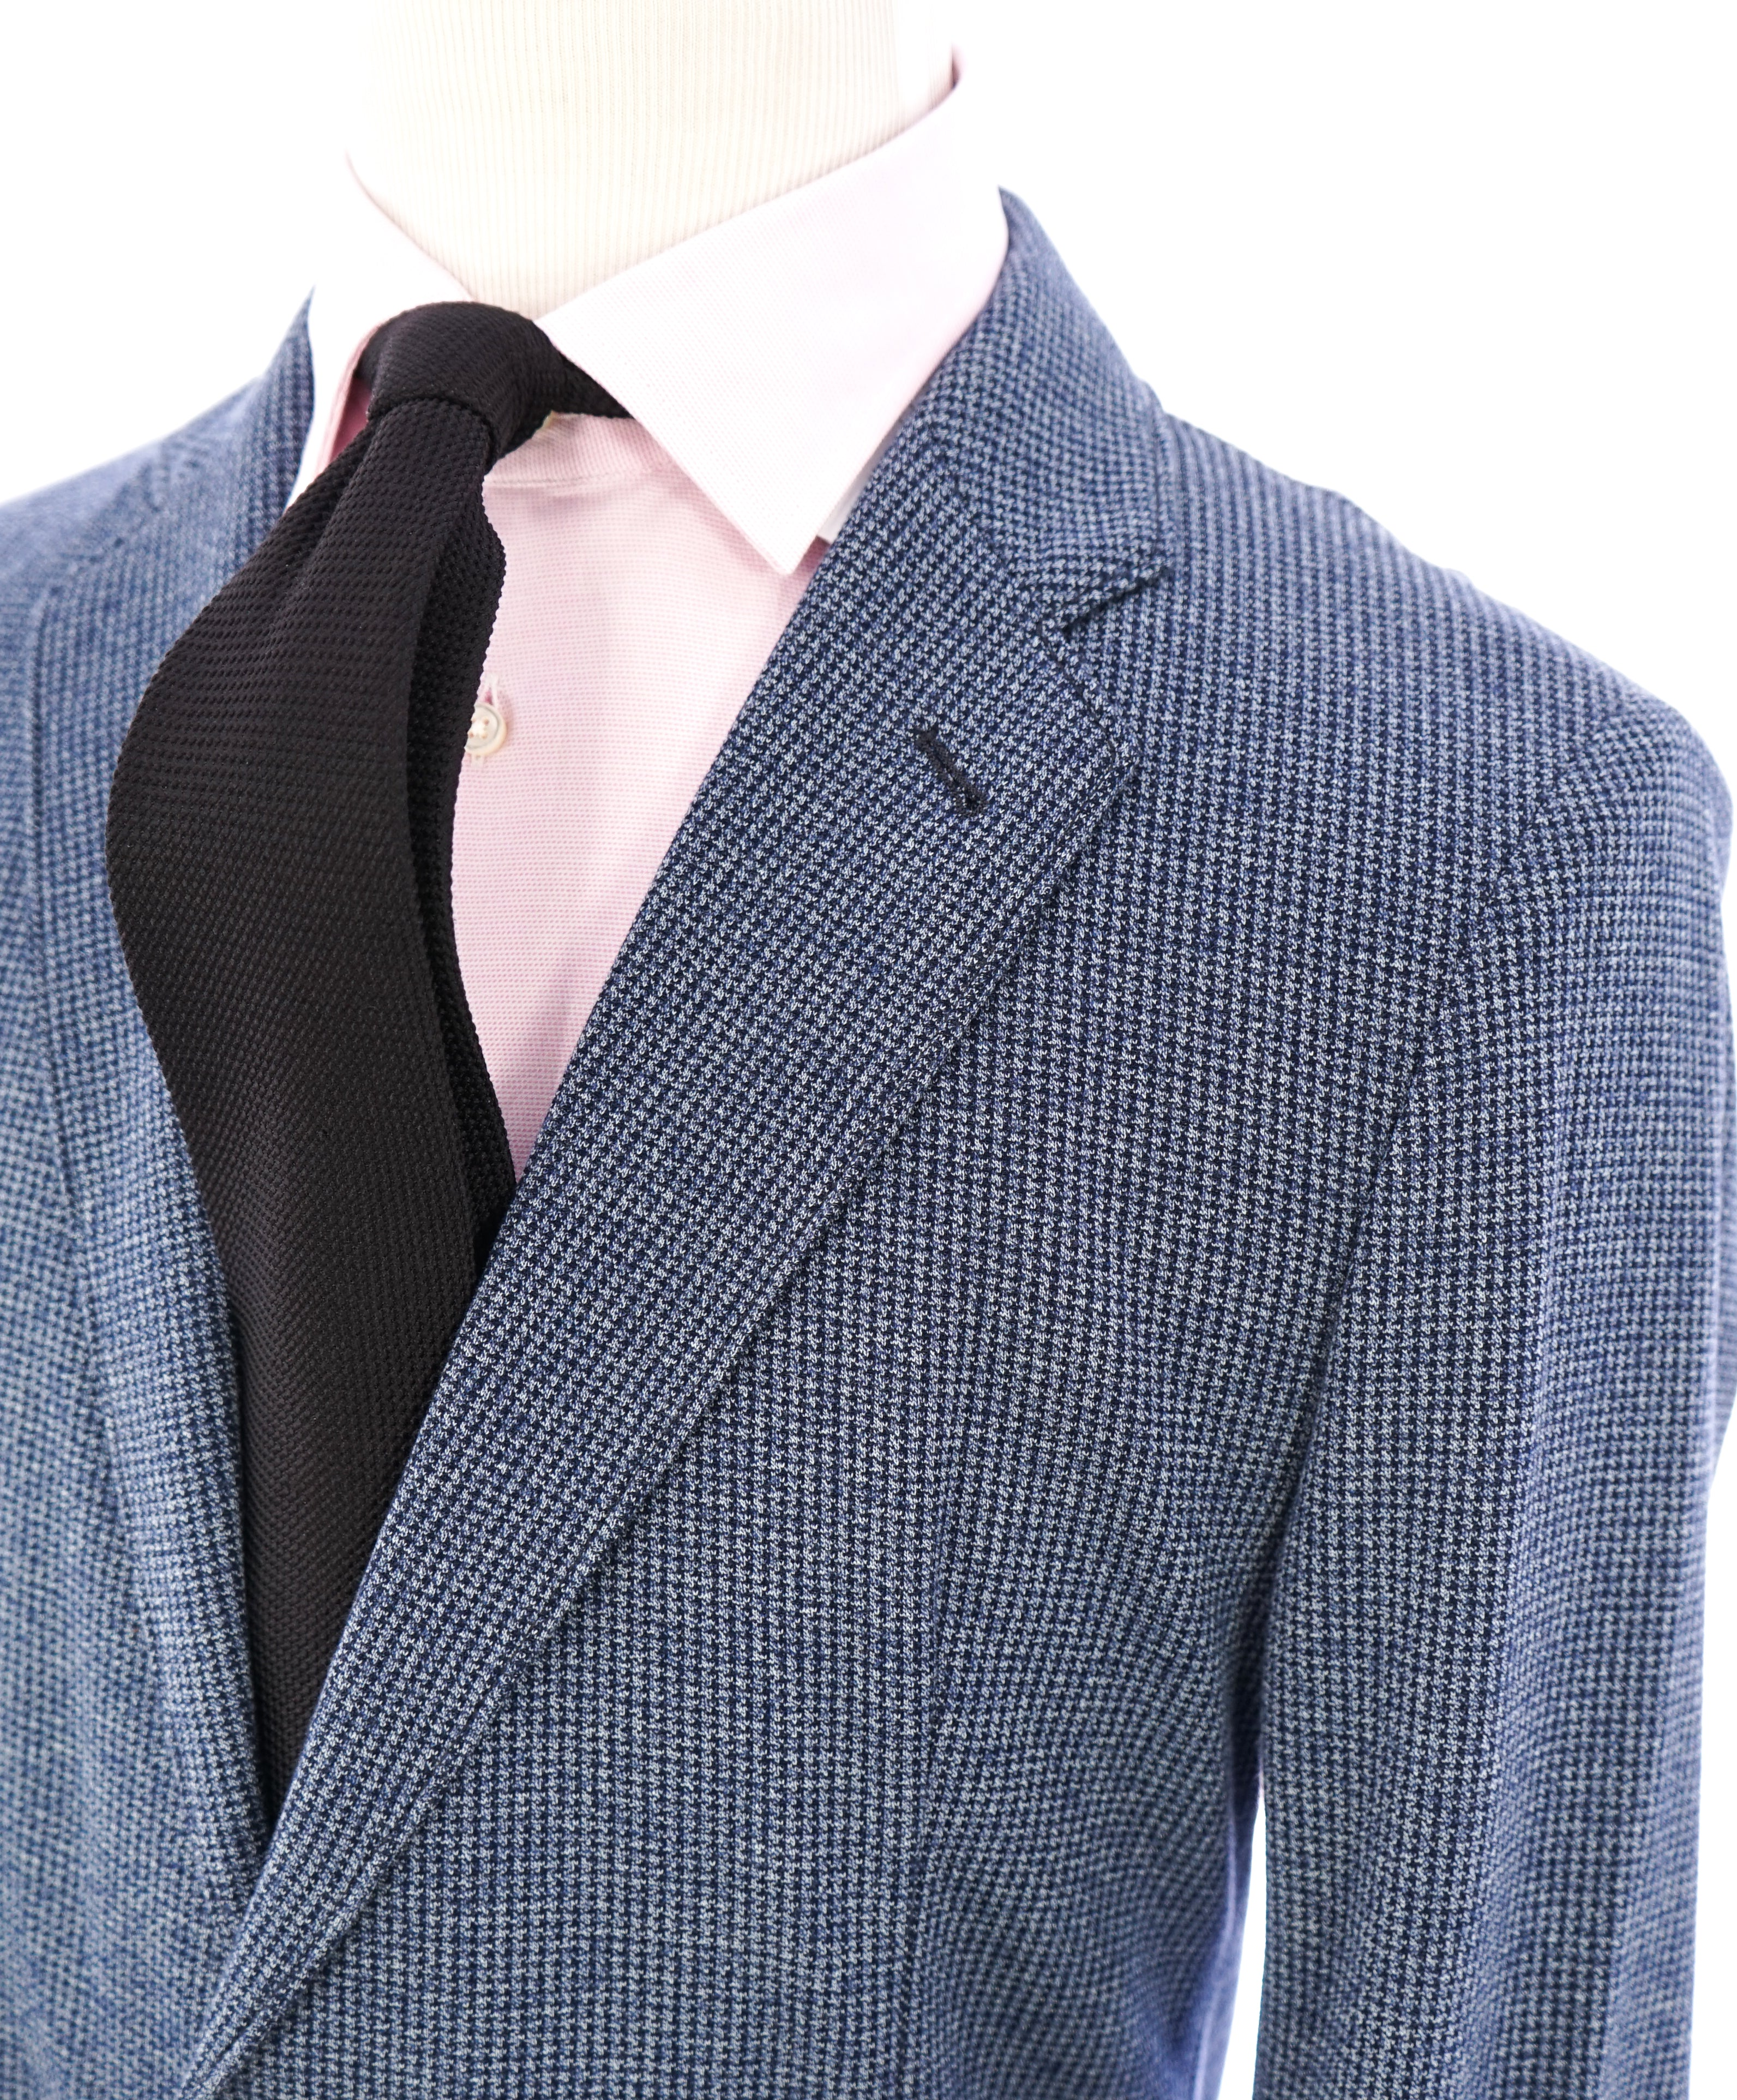 ARMANI COLLEZIONI - Unlined Blue Houndstooth Slim Updated Cotton Blazer - 42R